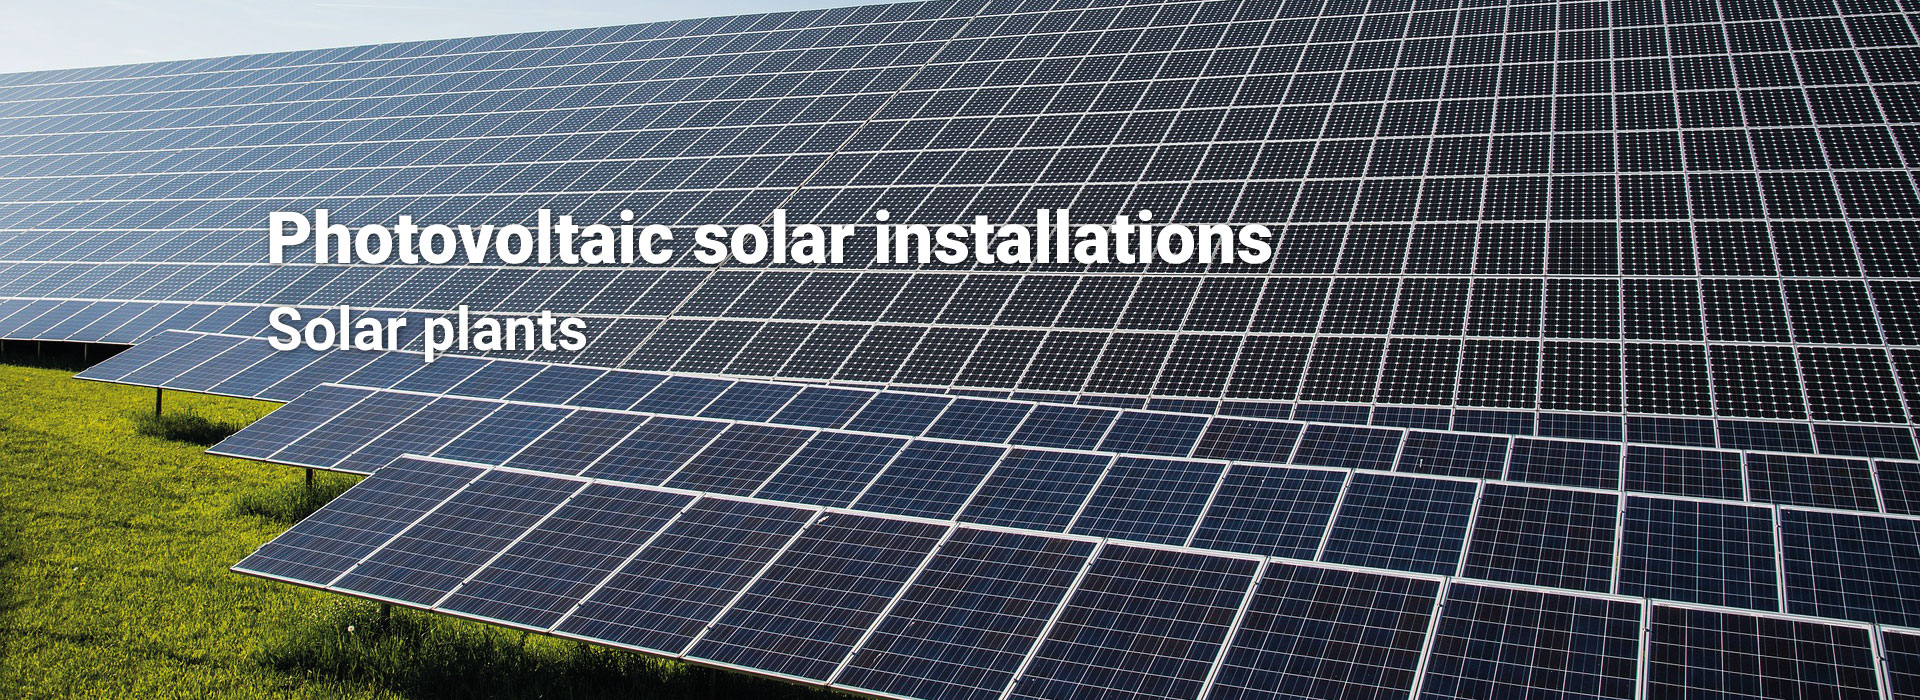 Photovoltaic solar installations | SOLAR PLANTS